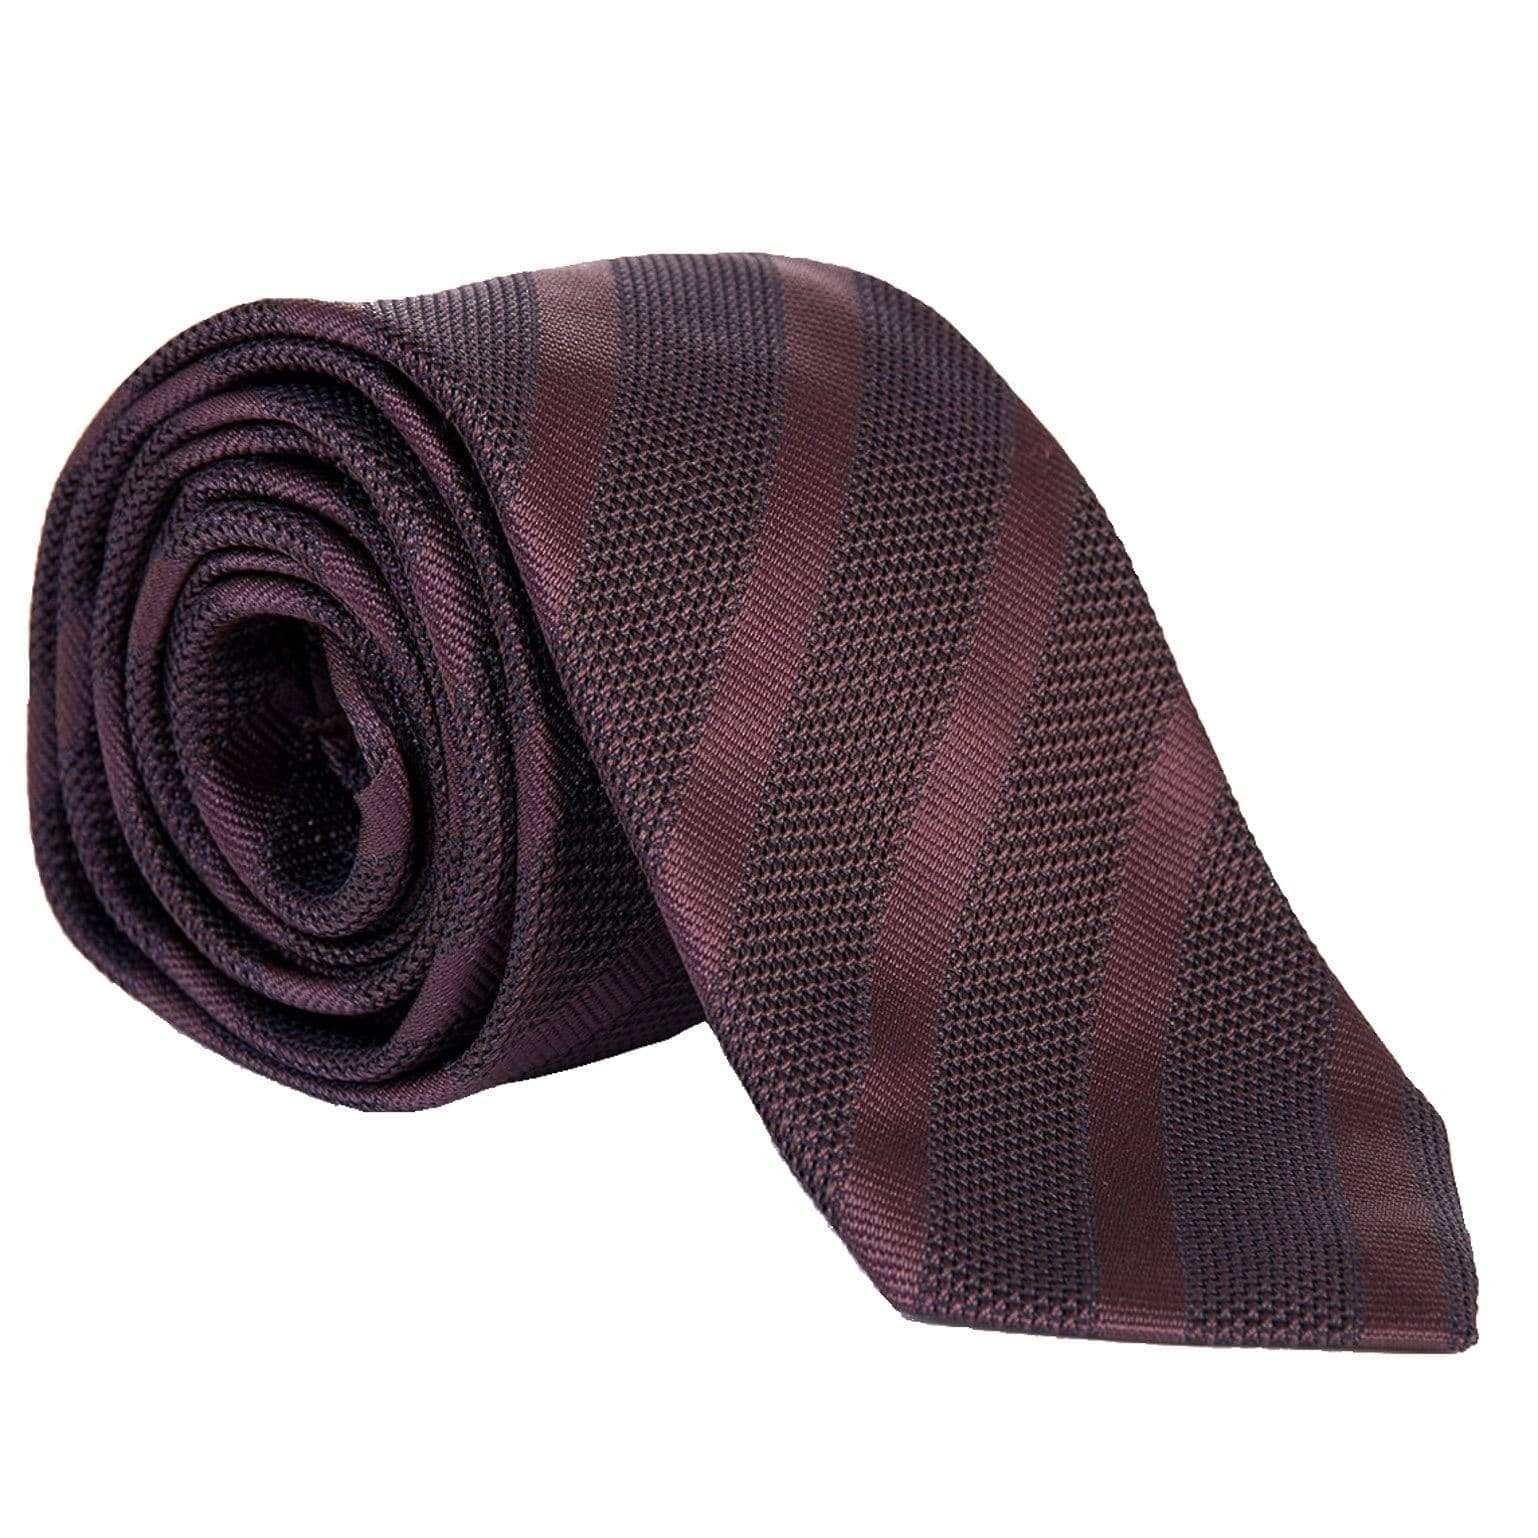 Italian Extra Long Grenadine Tie - Burgundy Striped